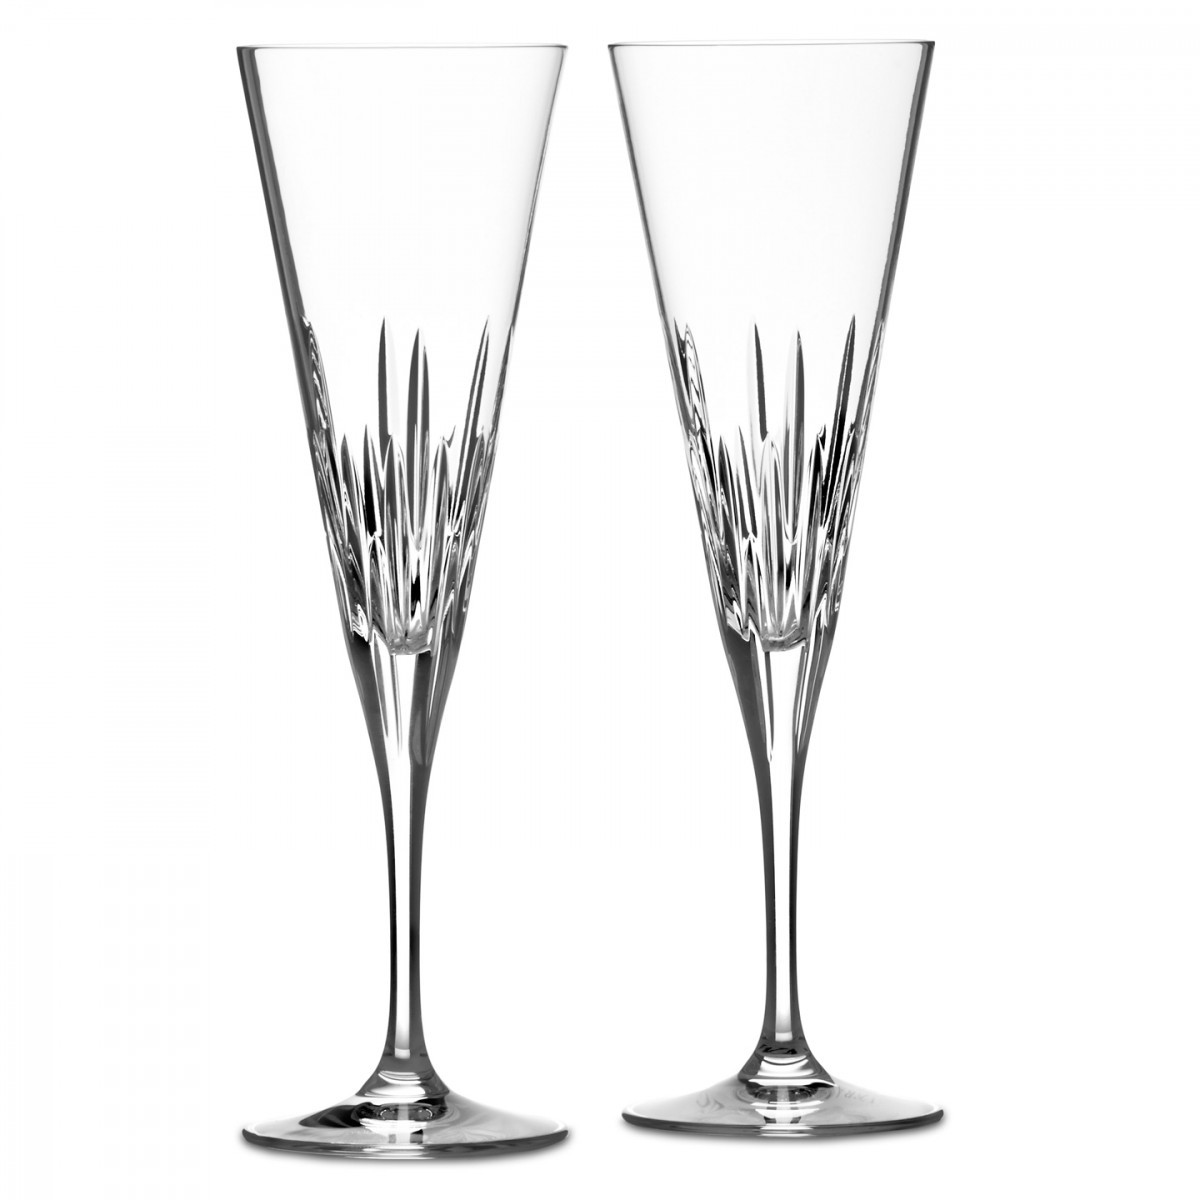 vera wang wedgwood vase of duchesse toasting flute pair vera wang wedgwood us pertaining to duchesse toasting flute pair